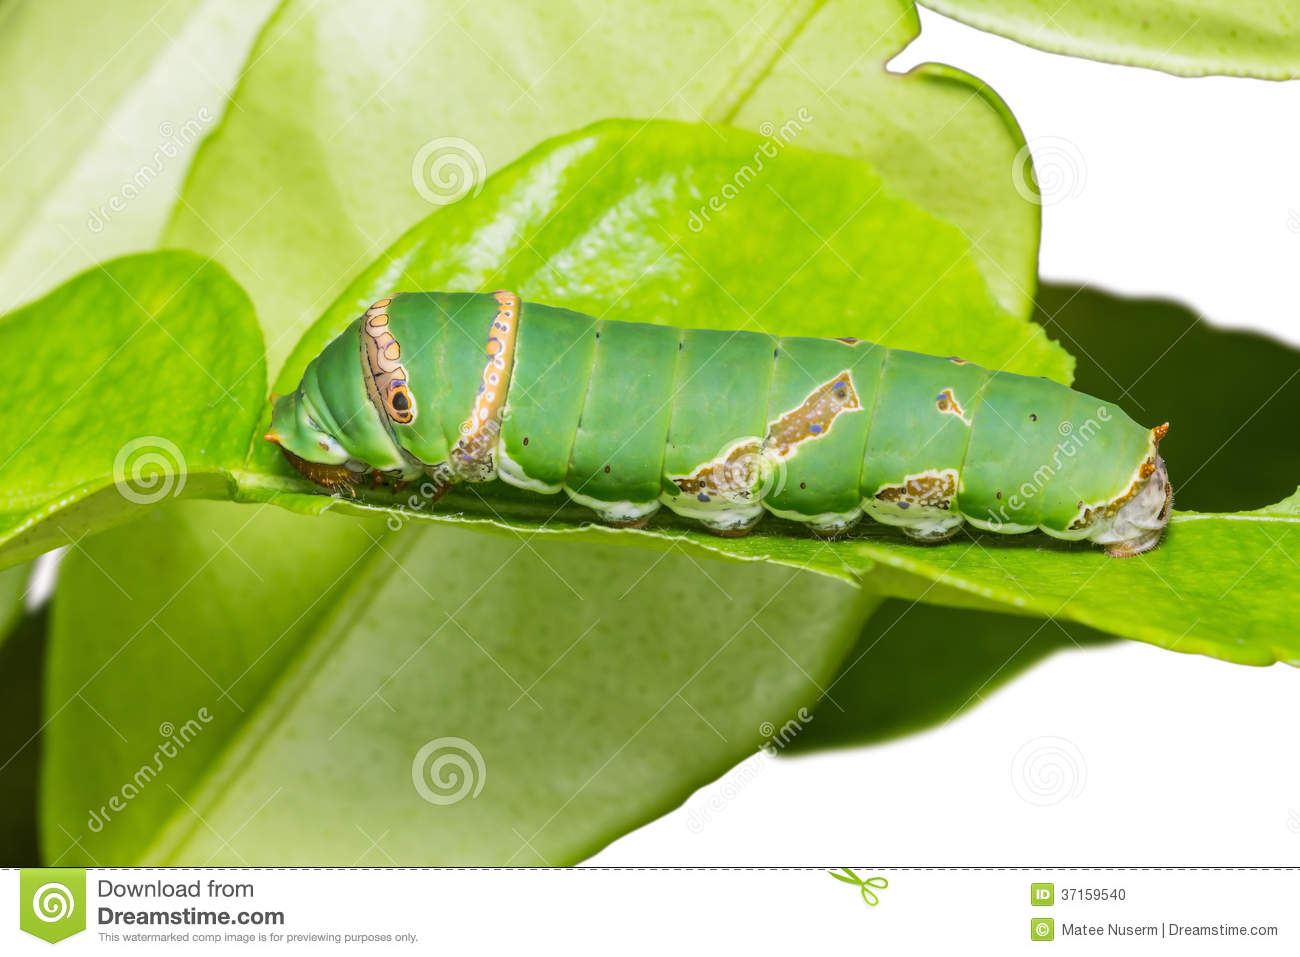 how to become a caterpillar dealer